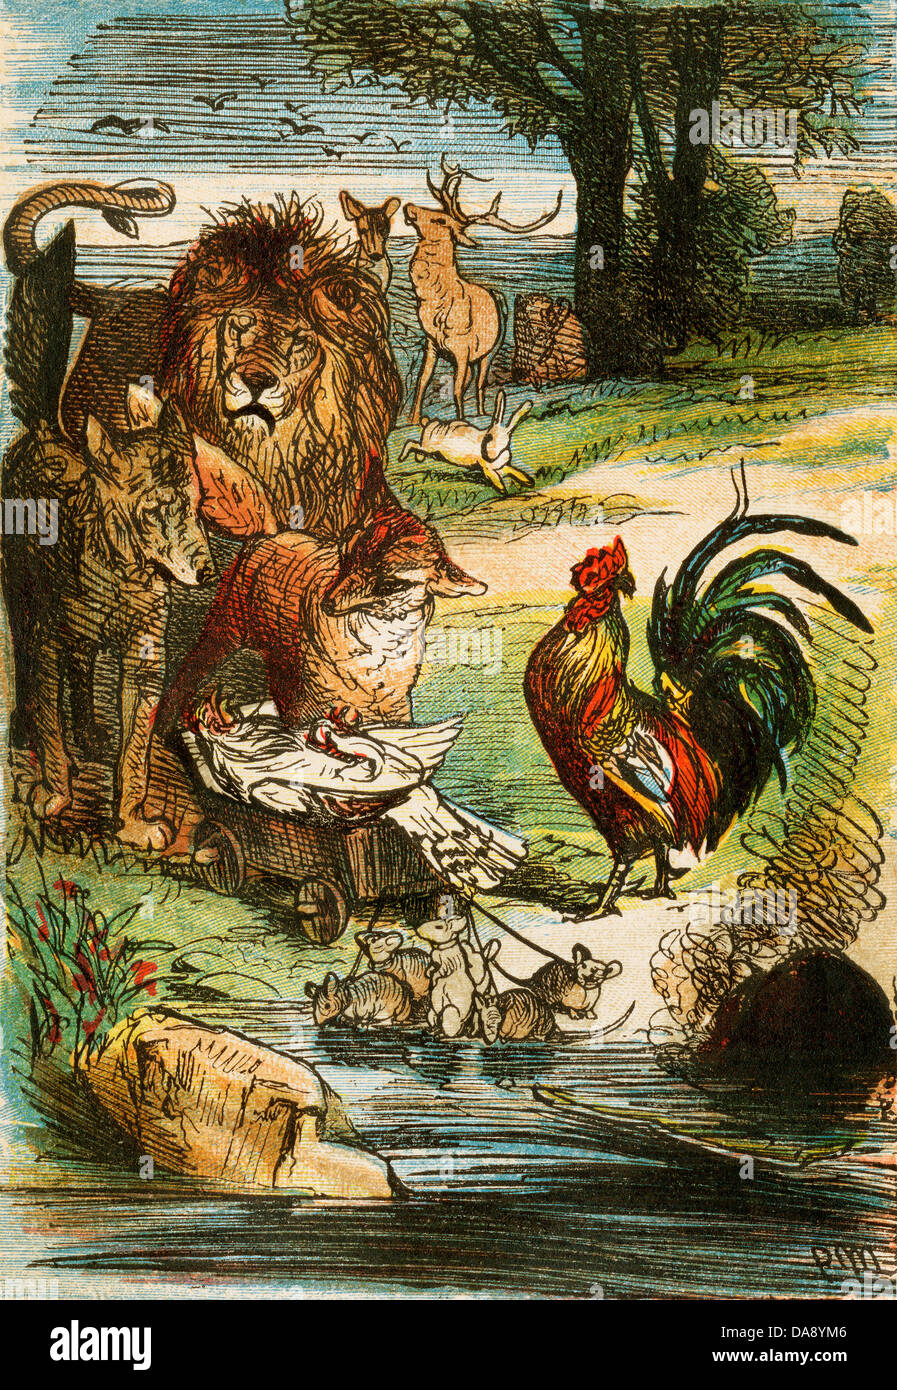 Death of a Chicken, from a Berlin edition of Grimms' Fairy Tales, 1865. Original color illustration - Stock Image